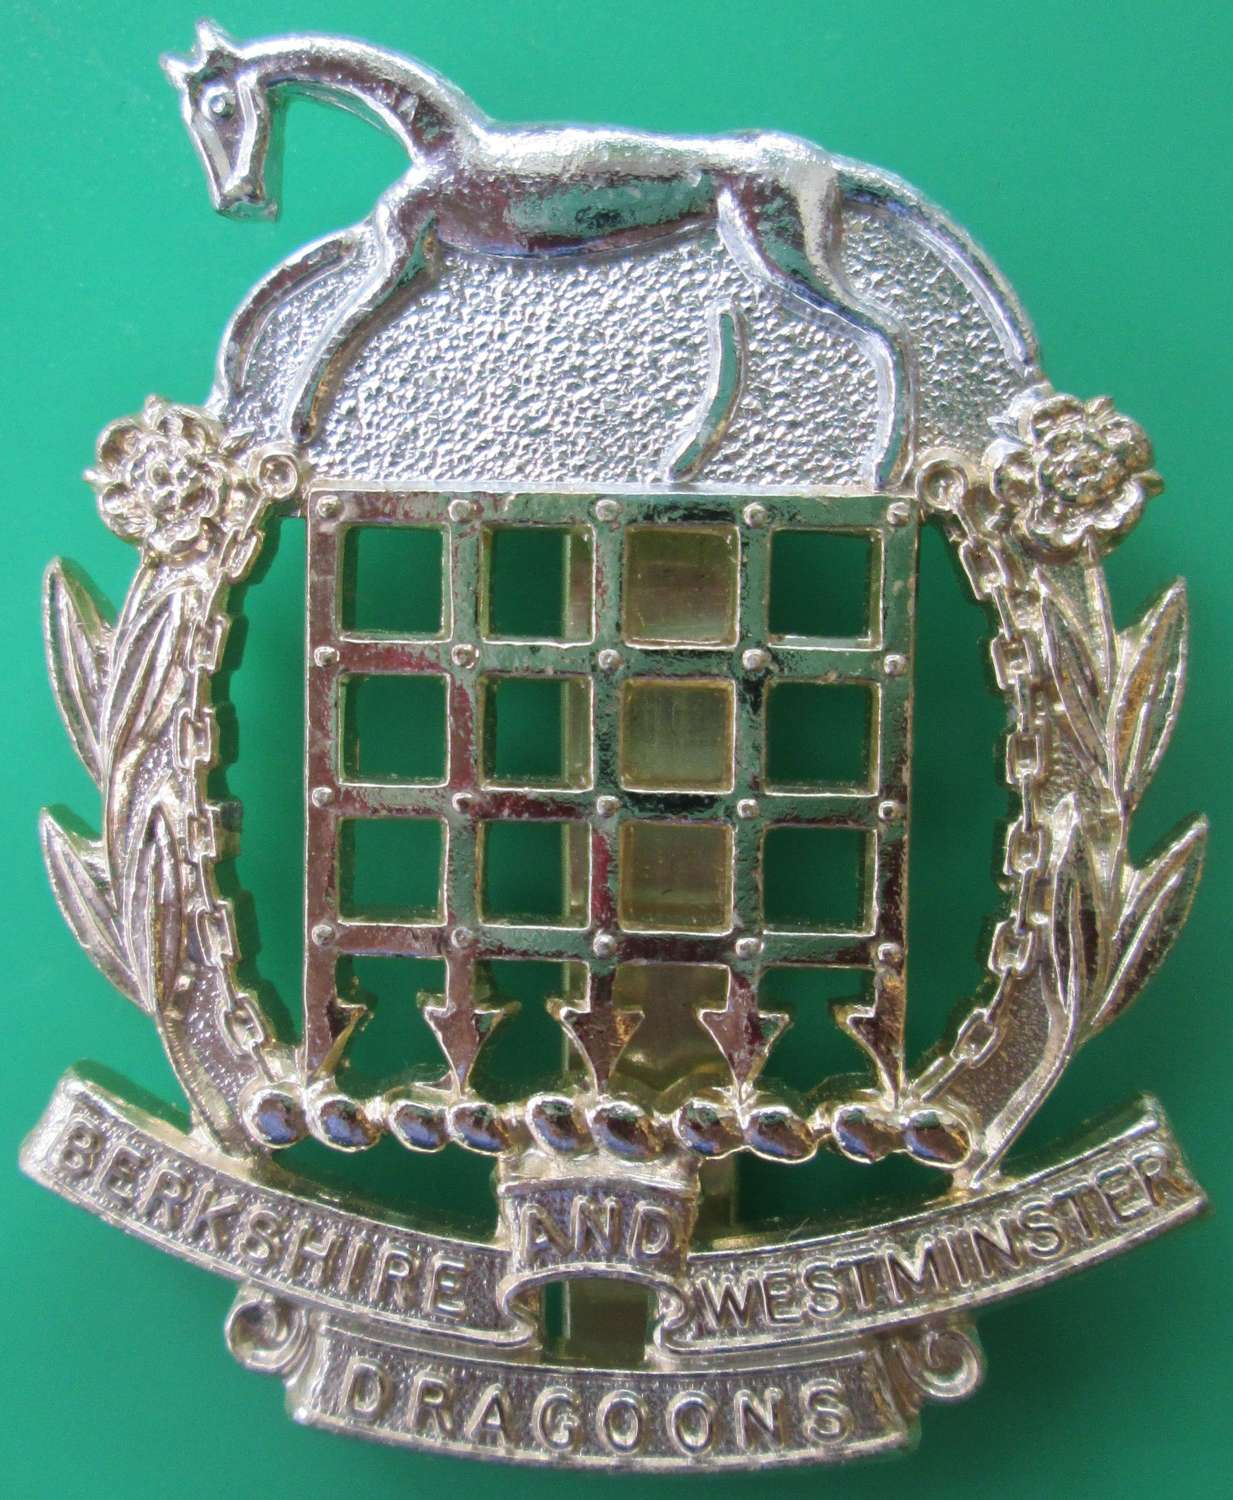 AN ANODISED BERKSHIRE AND WESTMINSTER DRAGOONS CAP BADGE